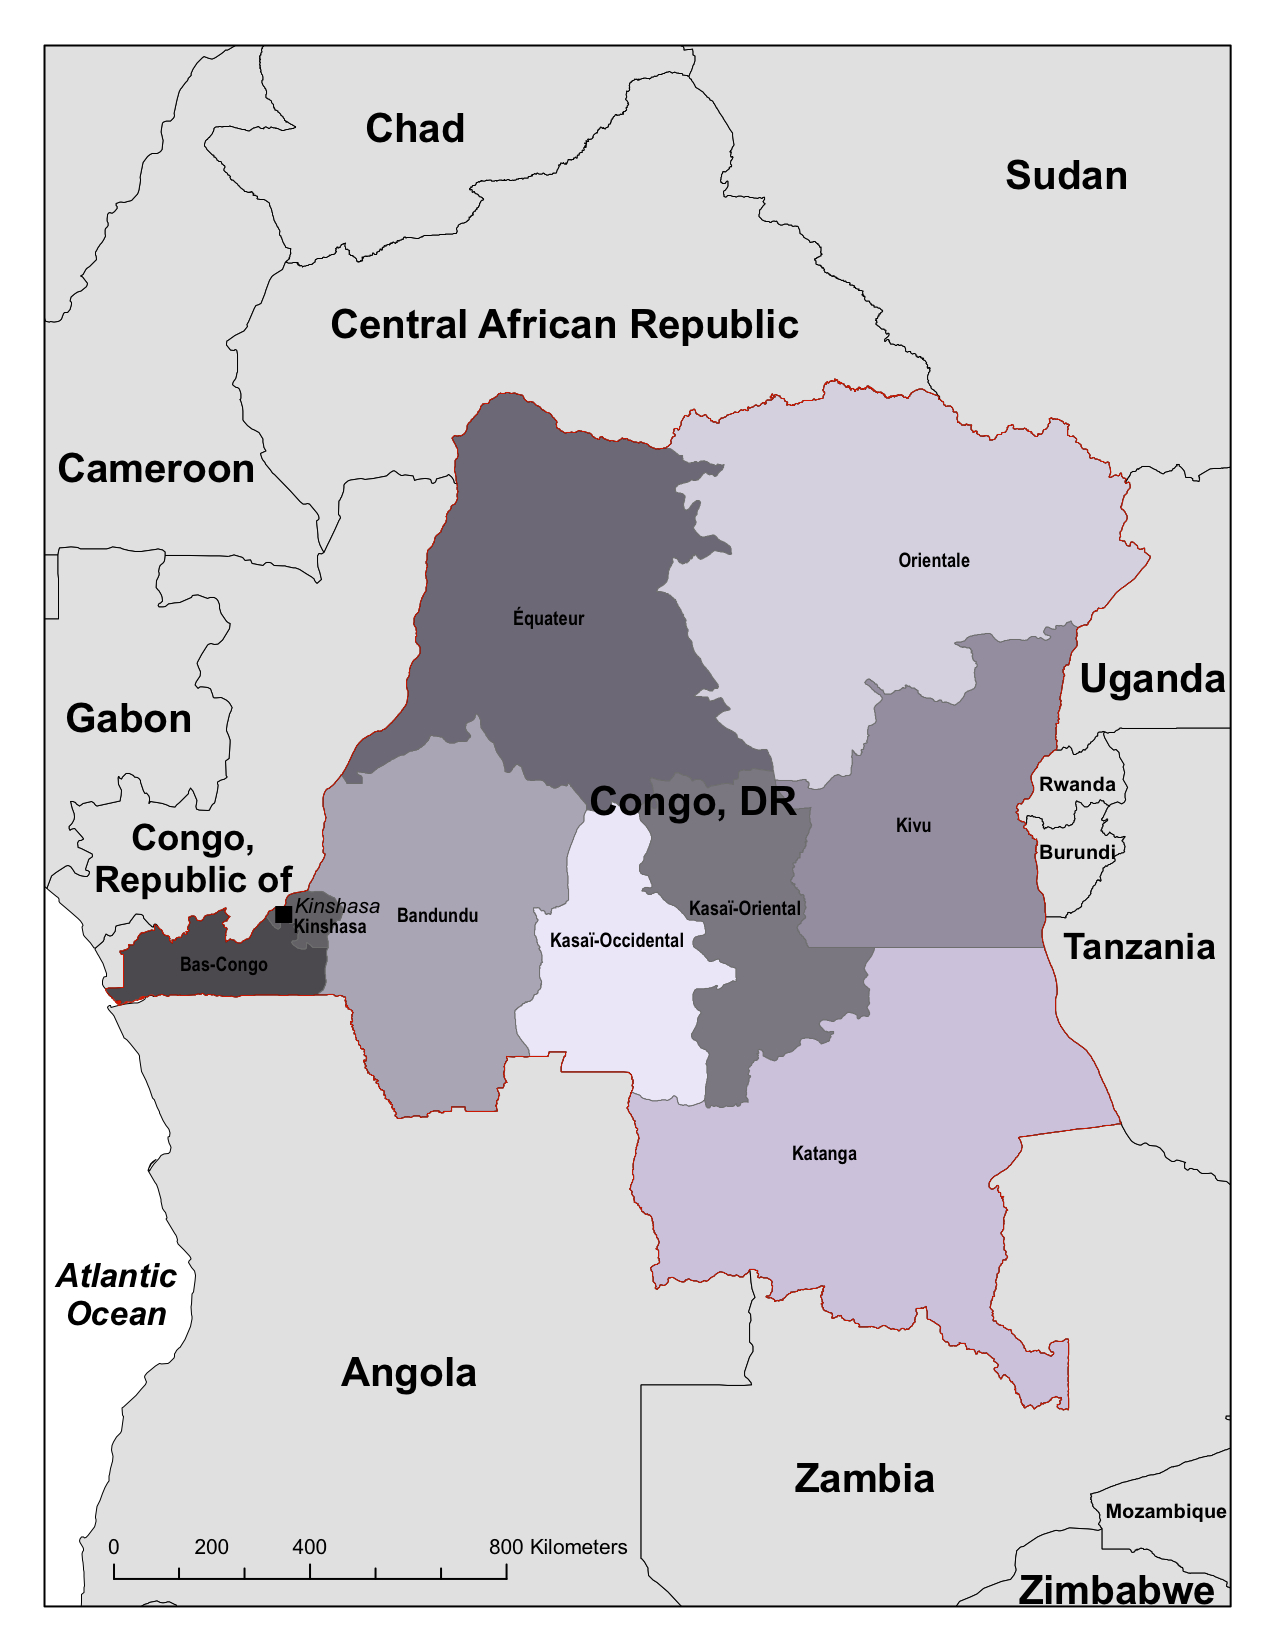 Congo, Democratic Republic